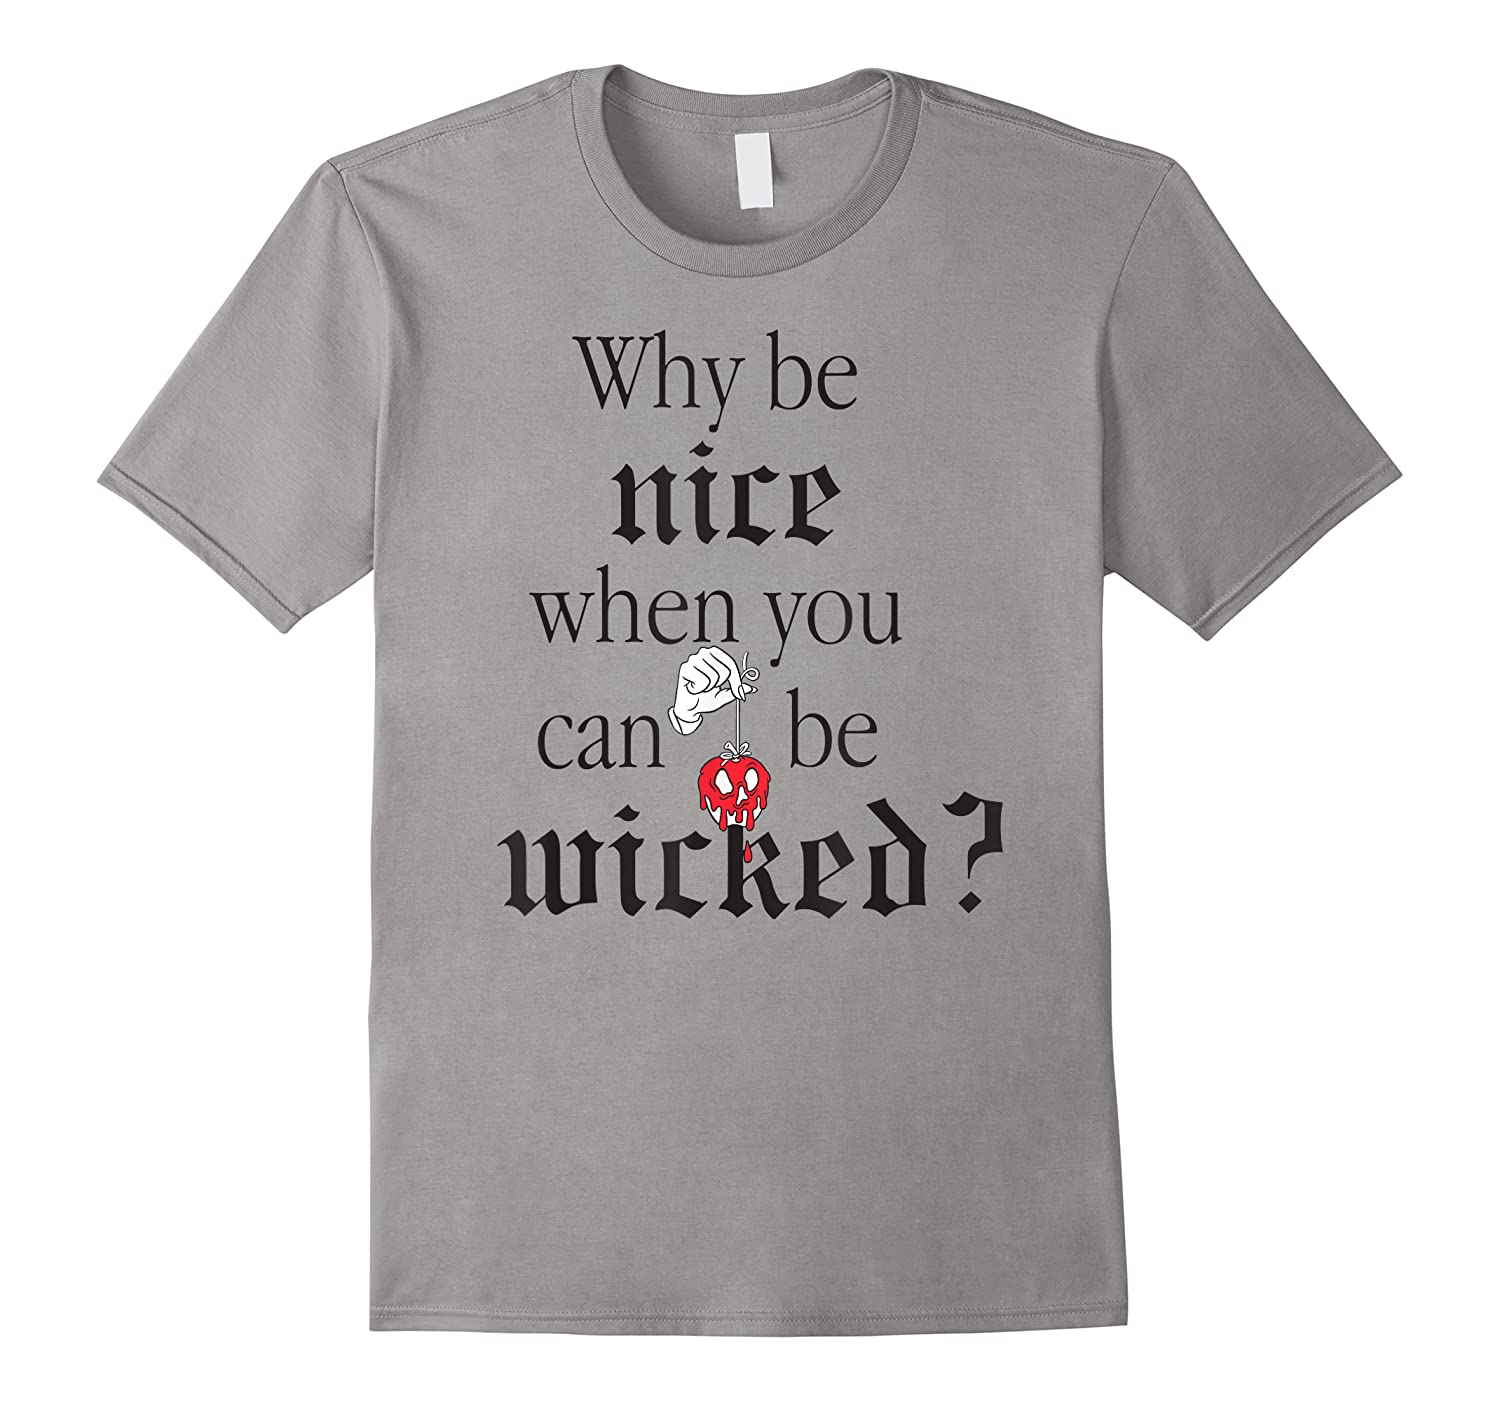 Disney Being Wicked Graphic T Shirt